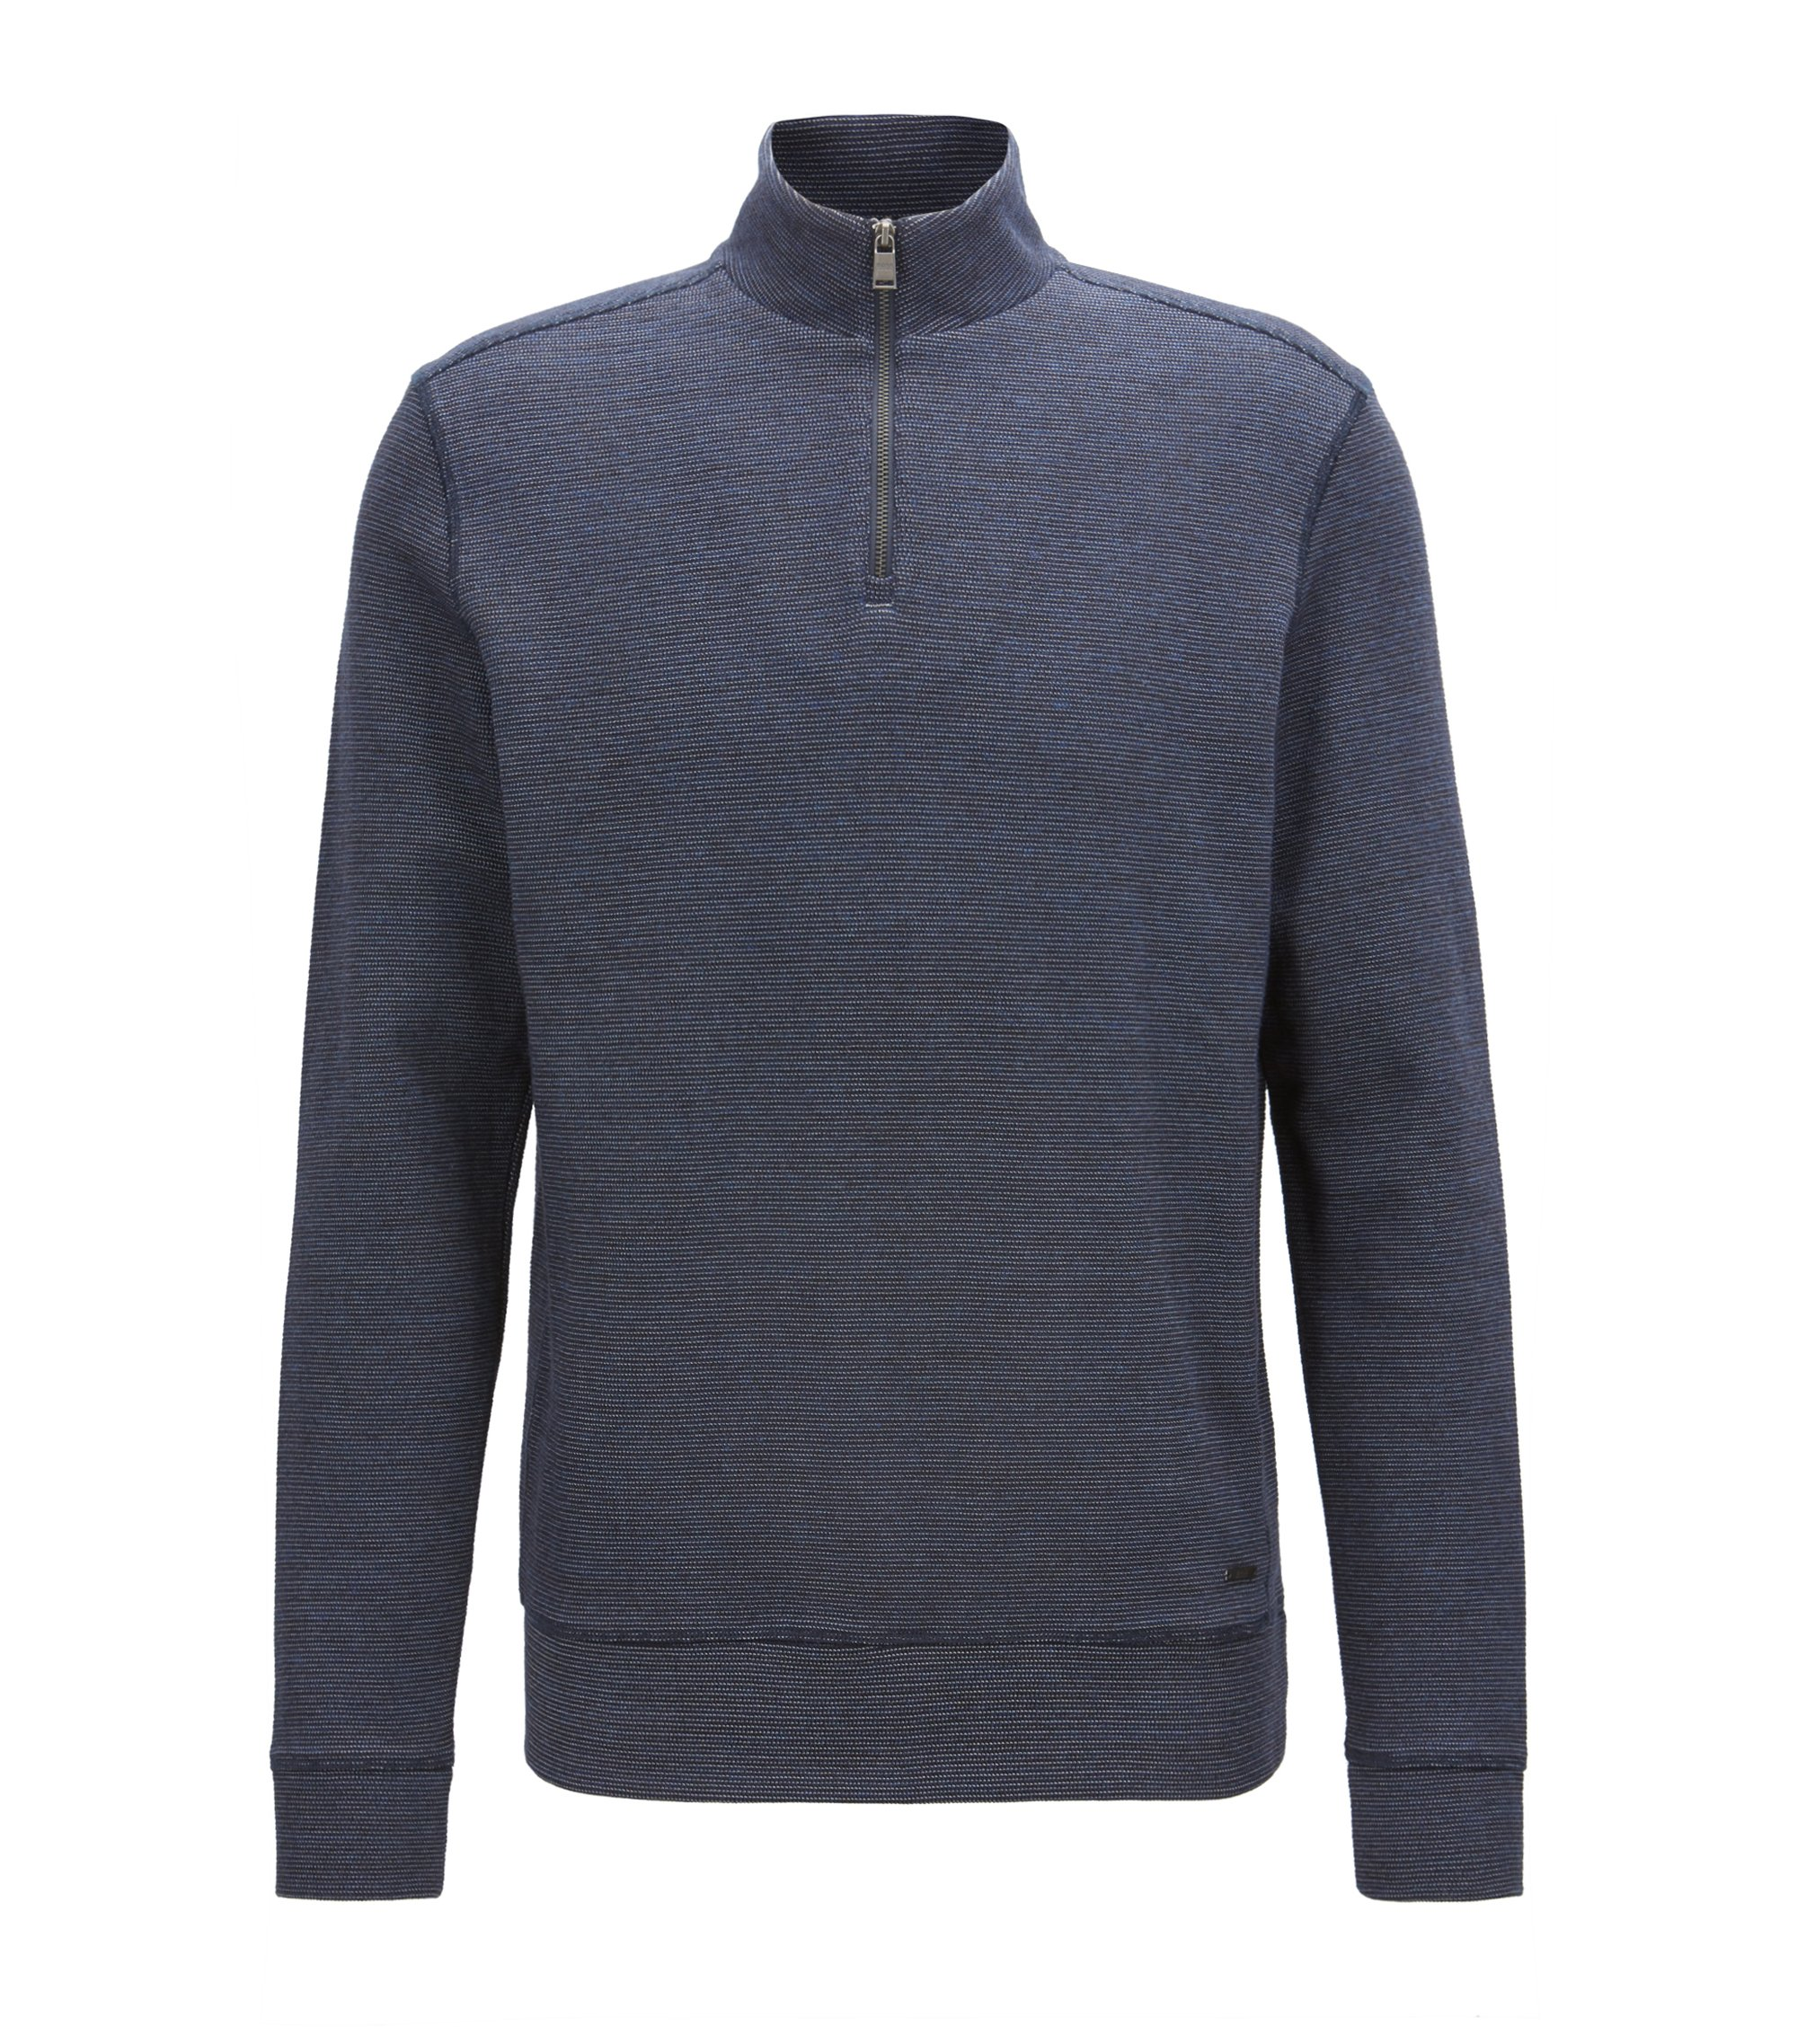 Zip-neck sweatshirt in two-tone cotton-blend jacquard, Dark Blue